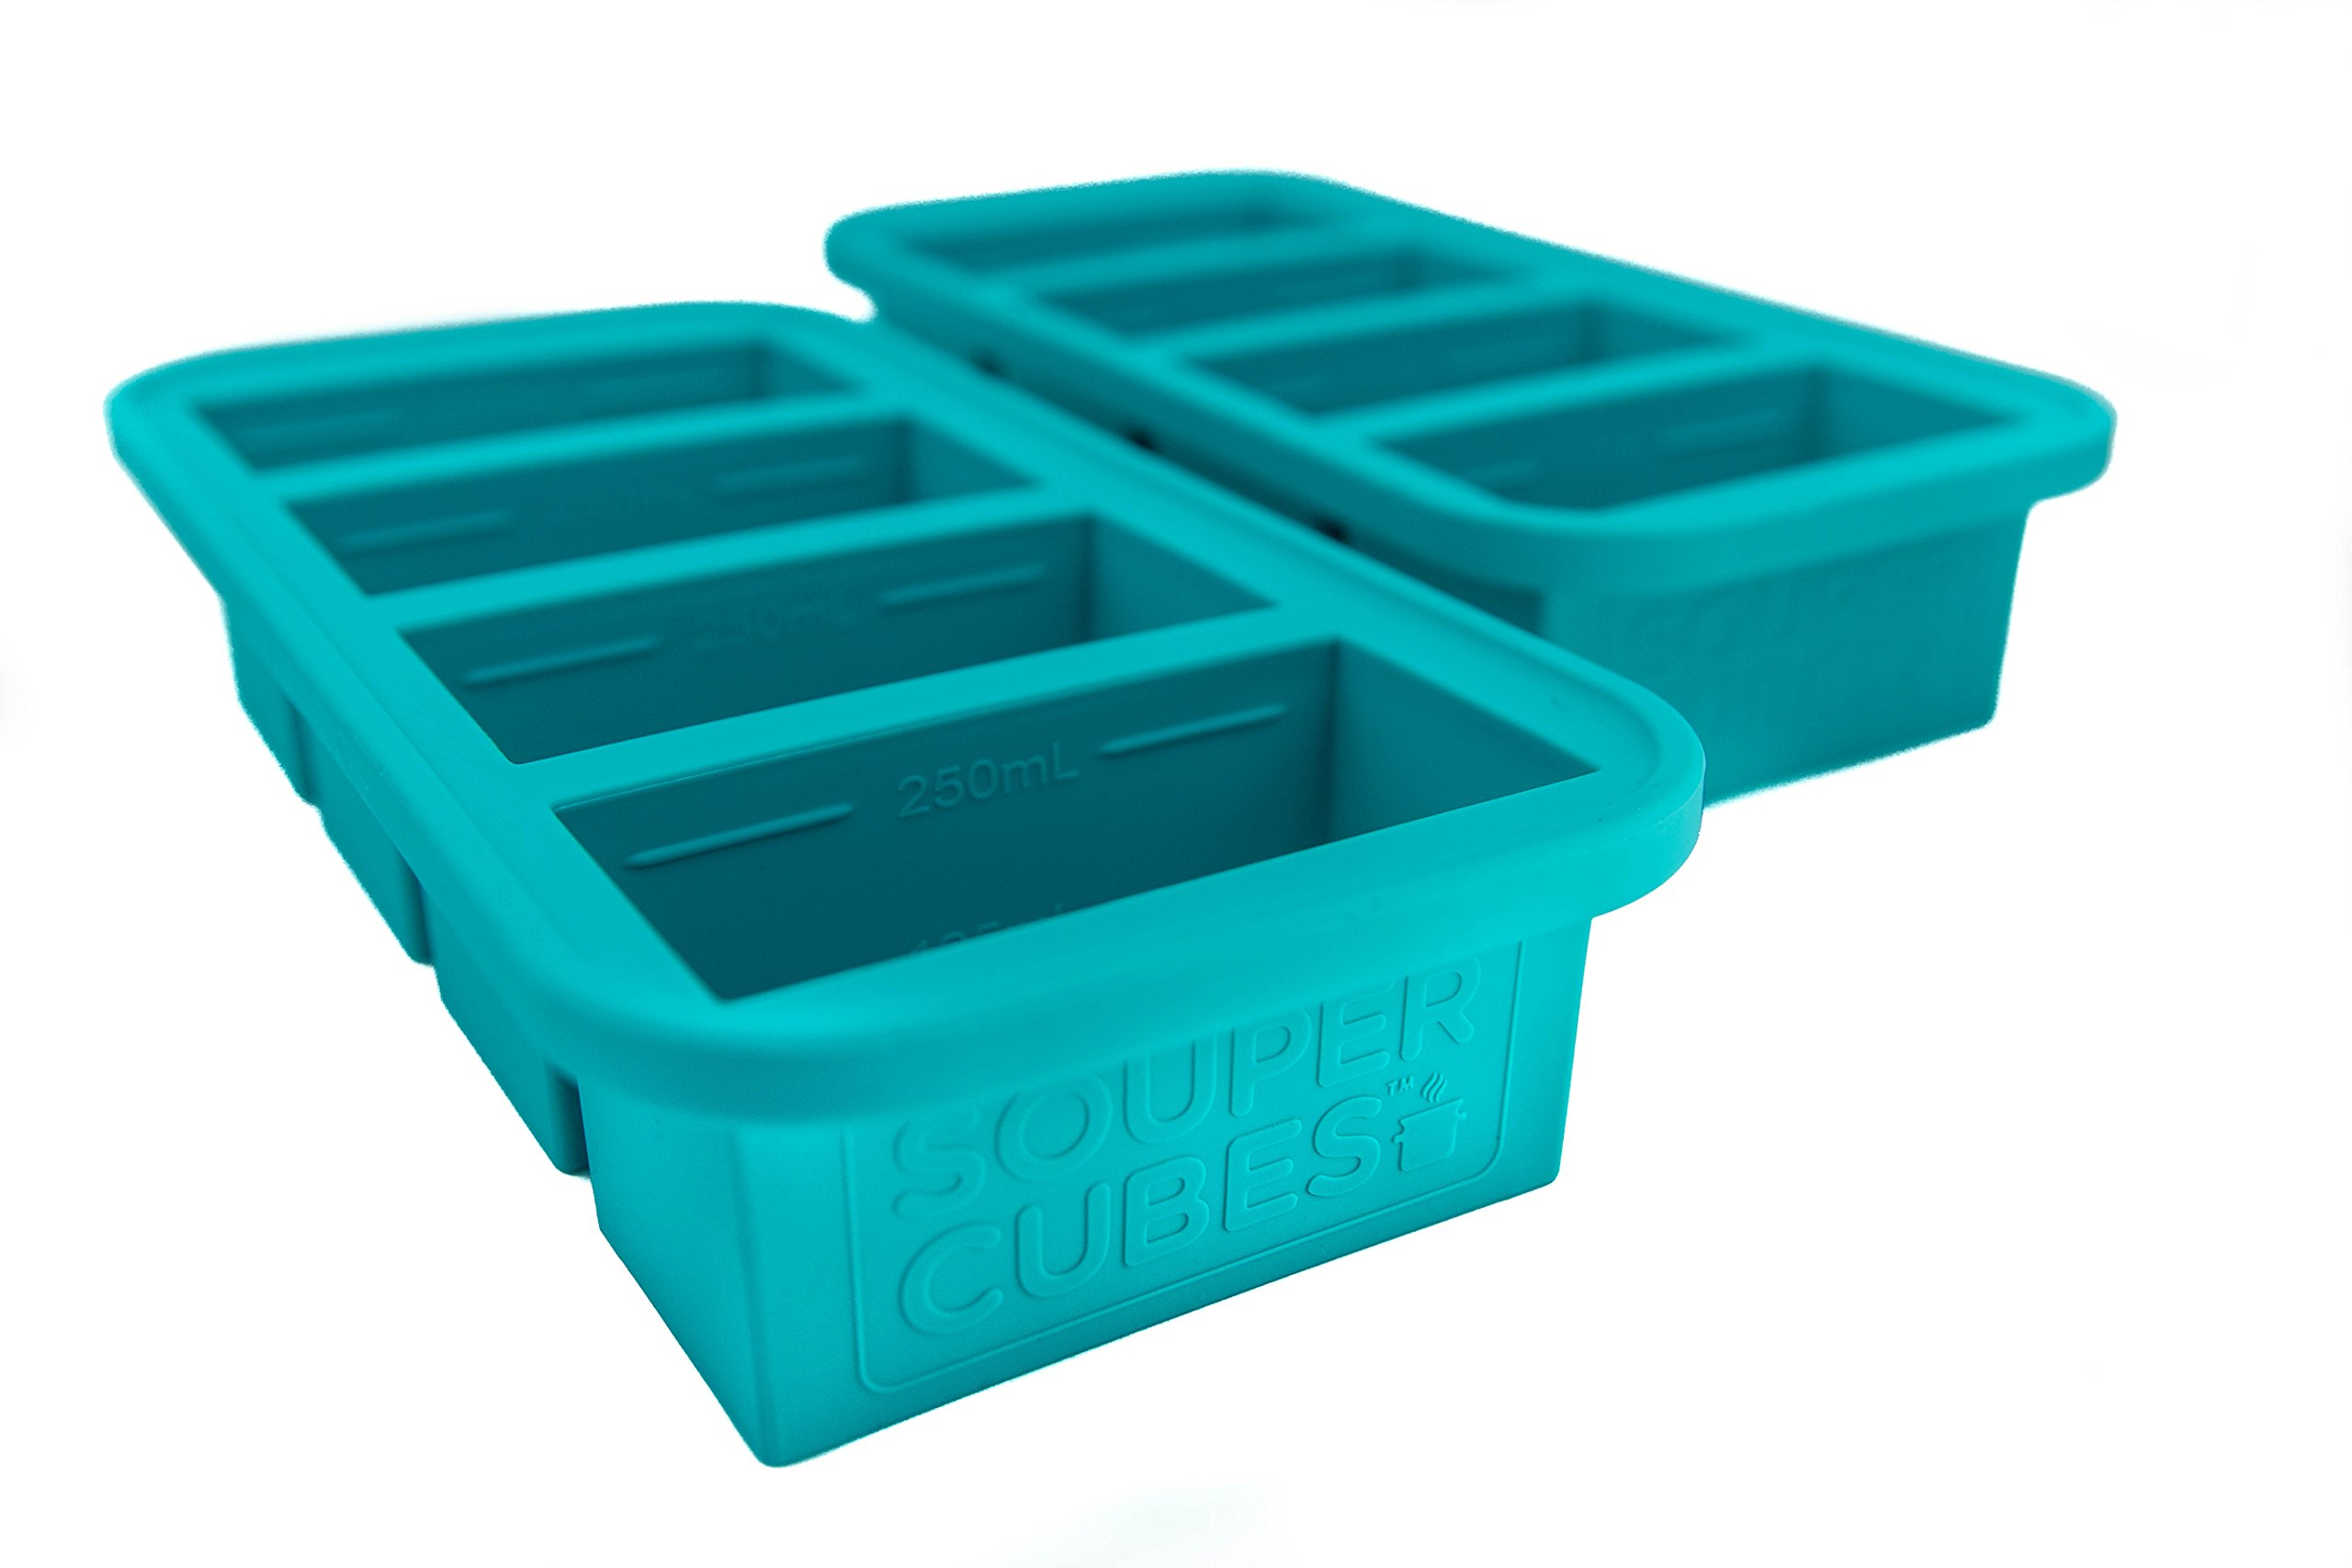 Souper Cubes Extra-Large Silicone Ice Cube Tray - 2 pack - makes 8 perfect 1cup portions - freeze soup broth or sauce